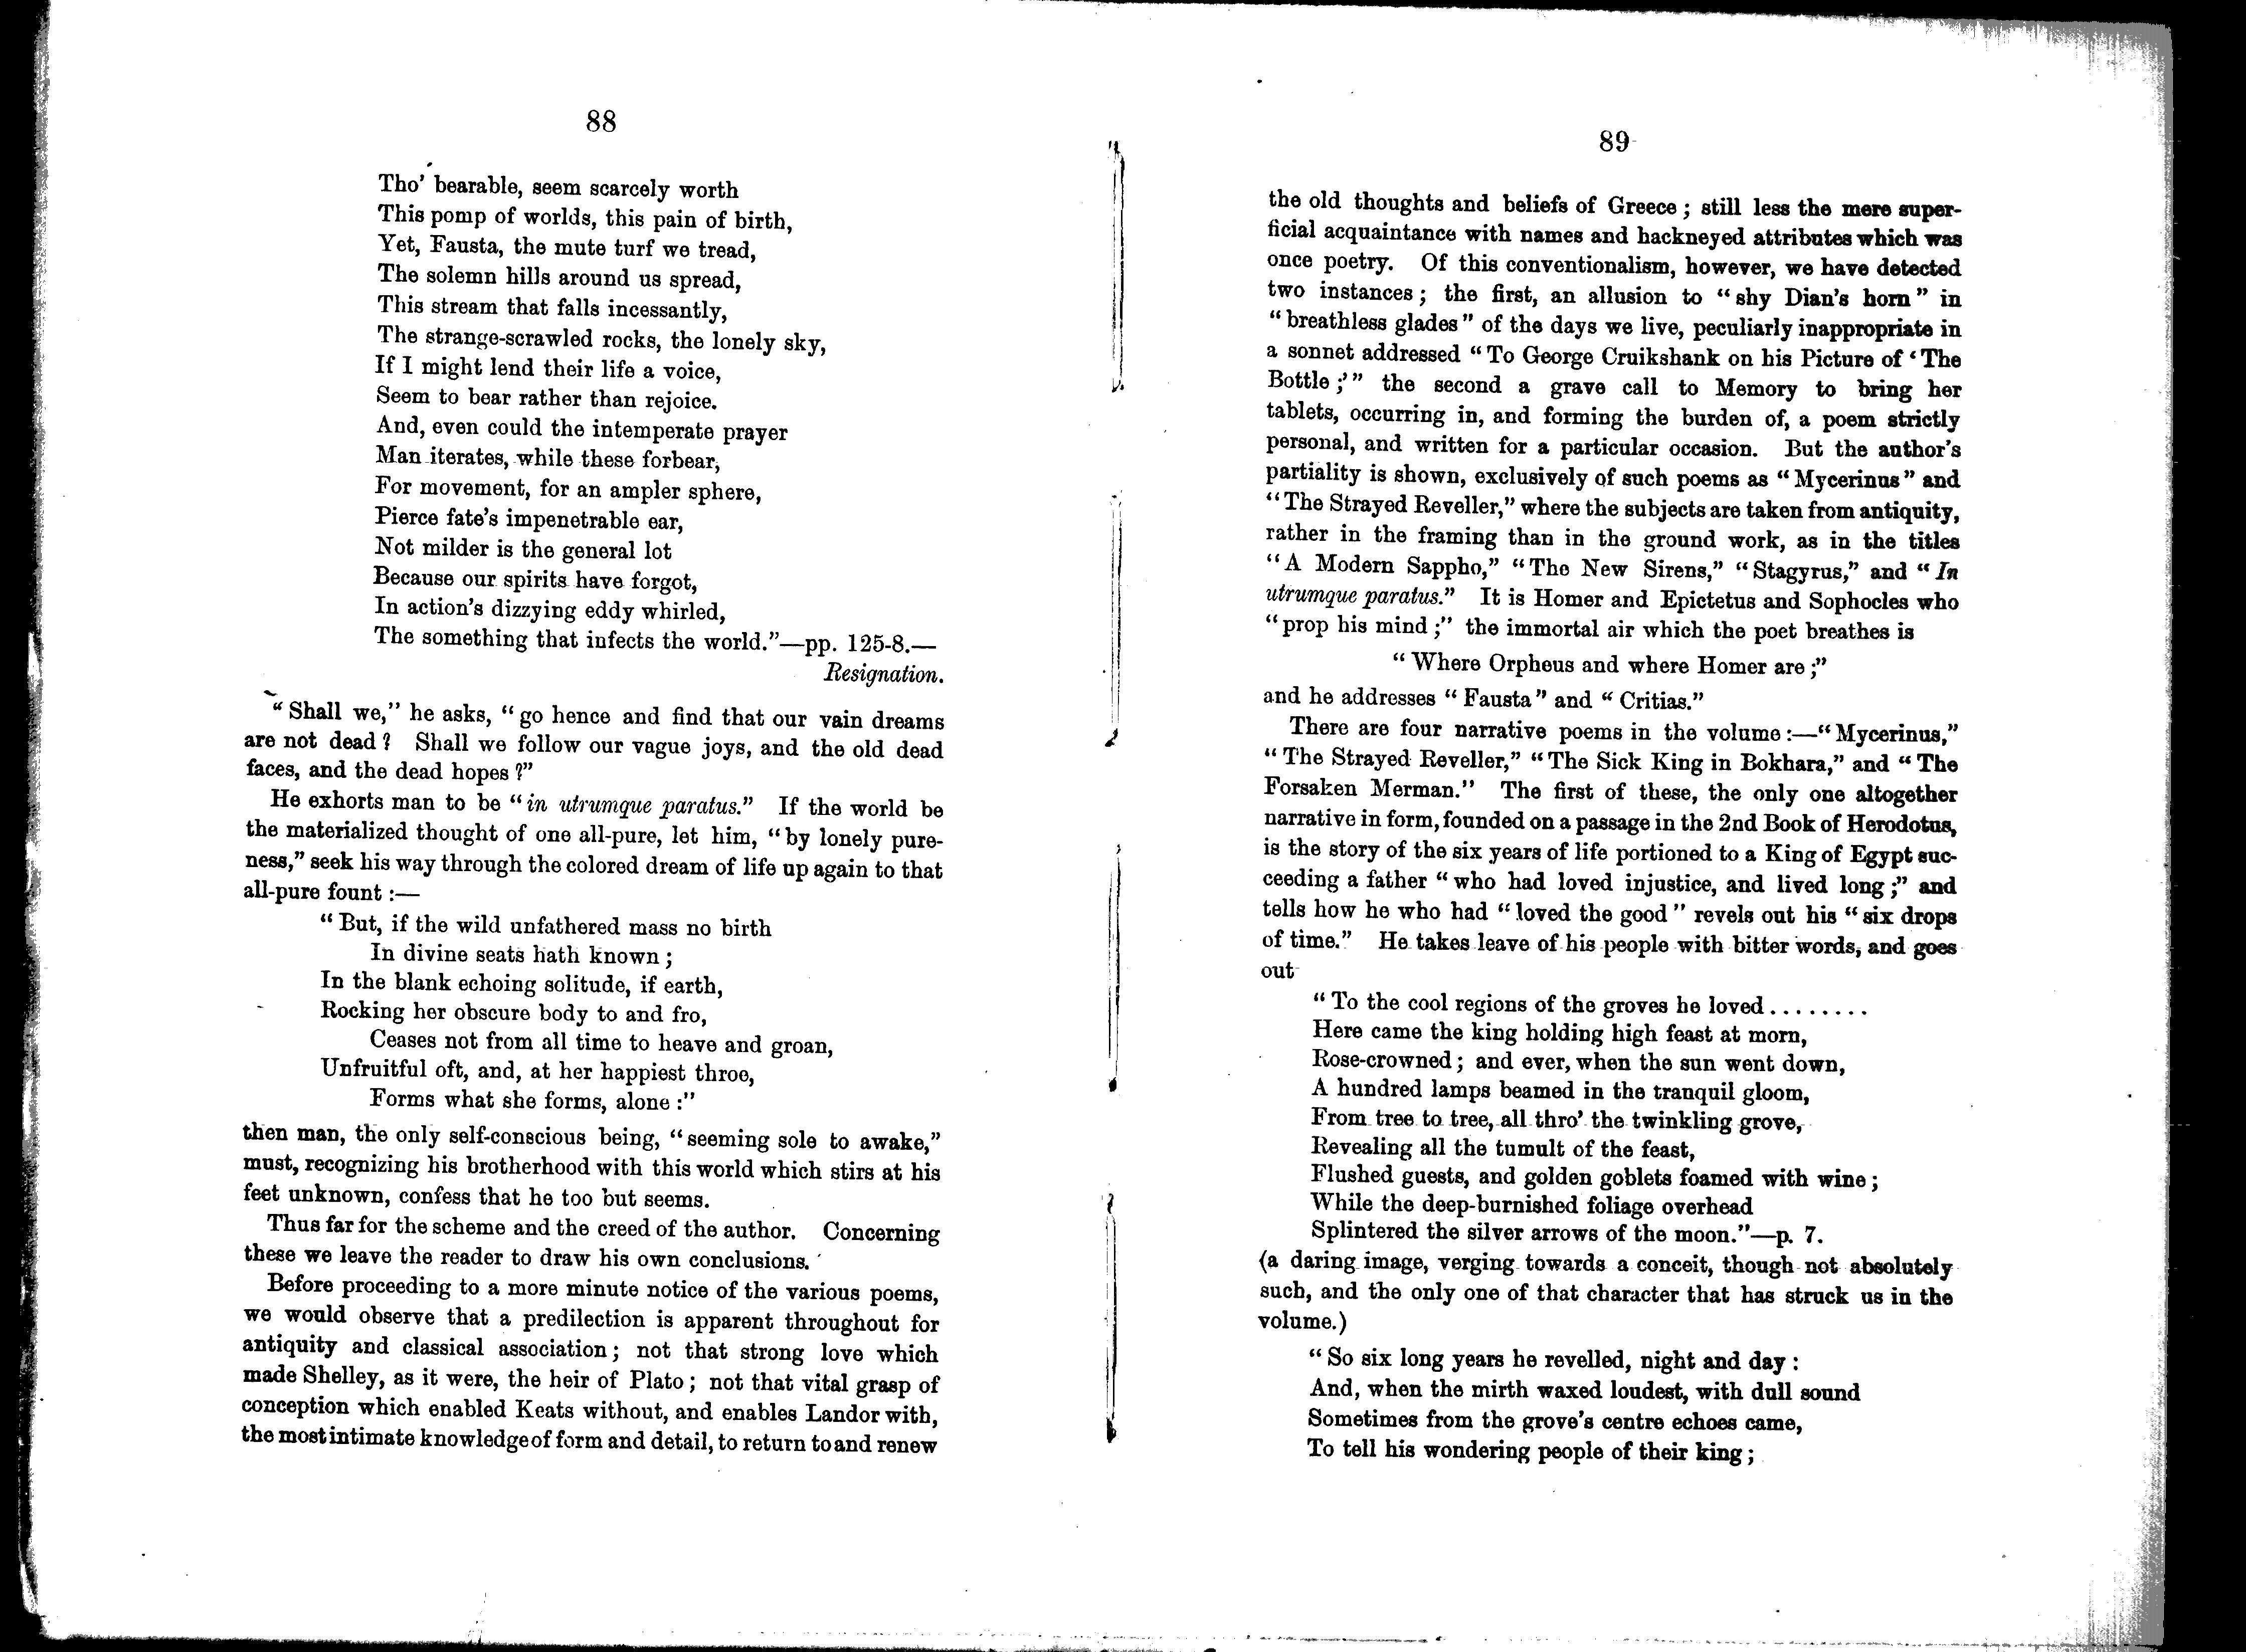 Rossetti Archive Doent: The Germ (1901 Facsimile Reprint, issue 2)